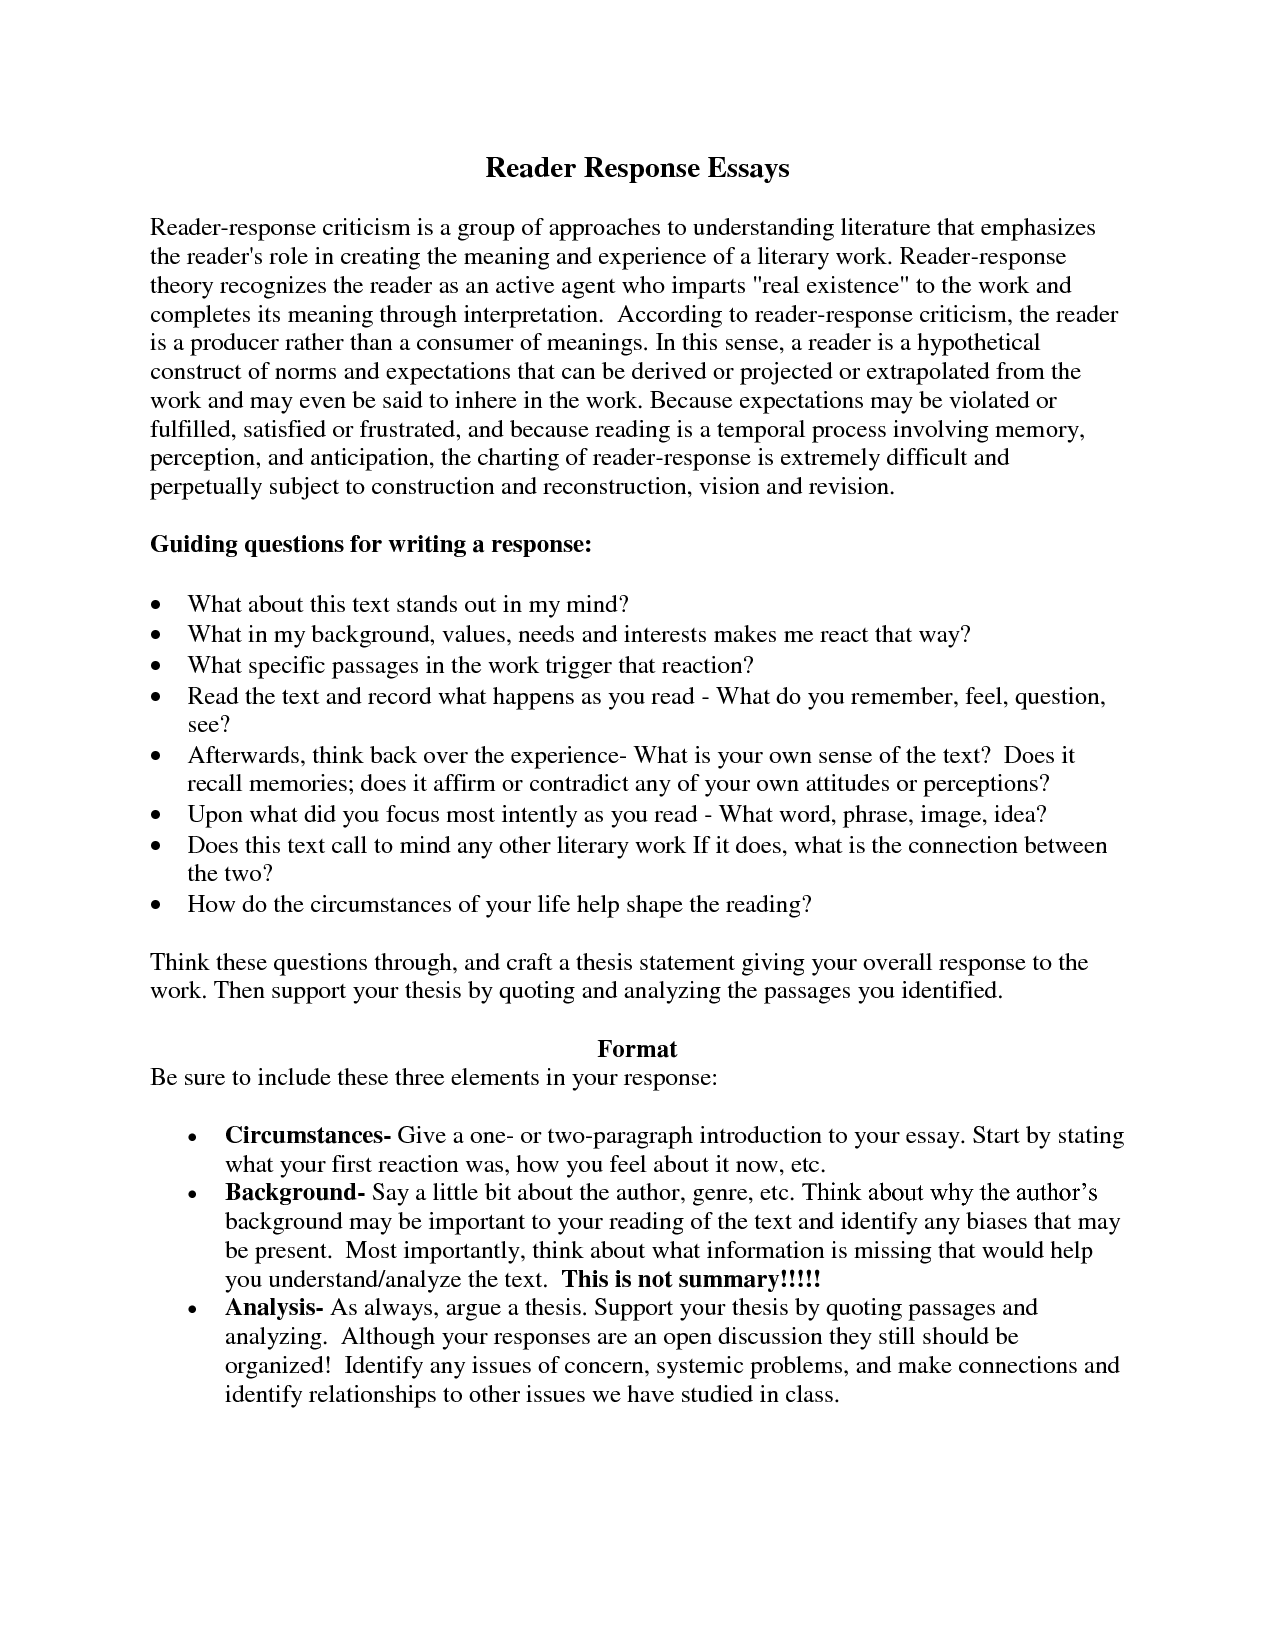 003 Summary Response Essay Example Background Define Discuss And Illustrate With Sample Of Critical Analysis Crossing Brooklyn How To Write Excellent Pdf Strong Full